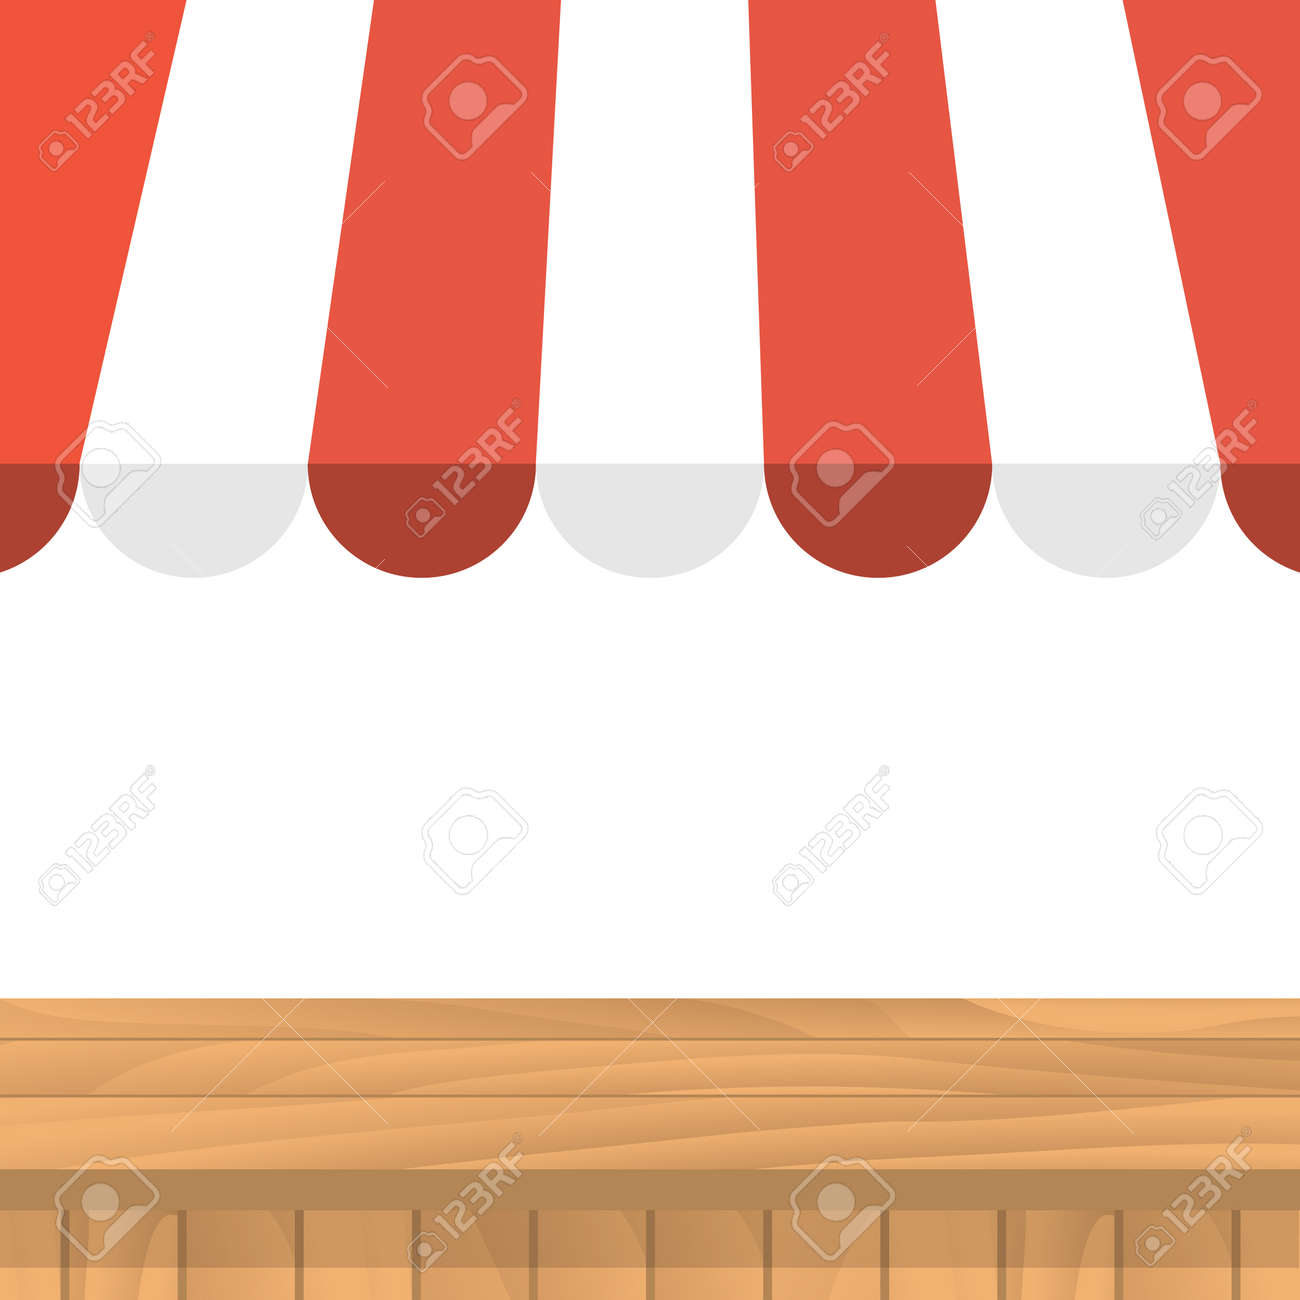 wooden table striped awning market stall shopping market stall shopping background template for and advertising of products on white street showcase local market vector illustration flat design